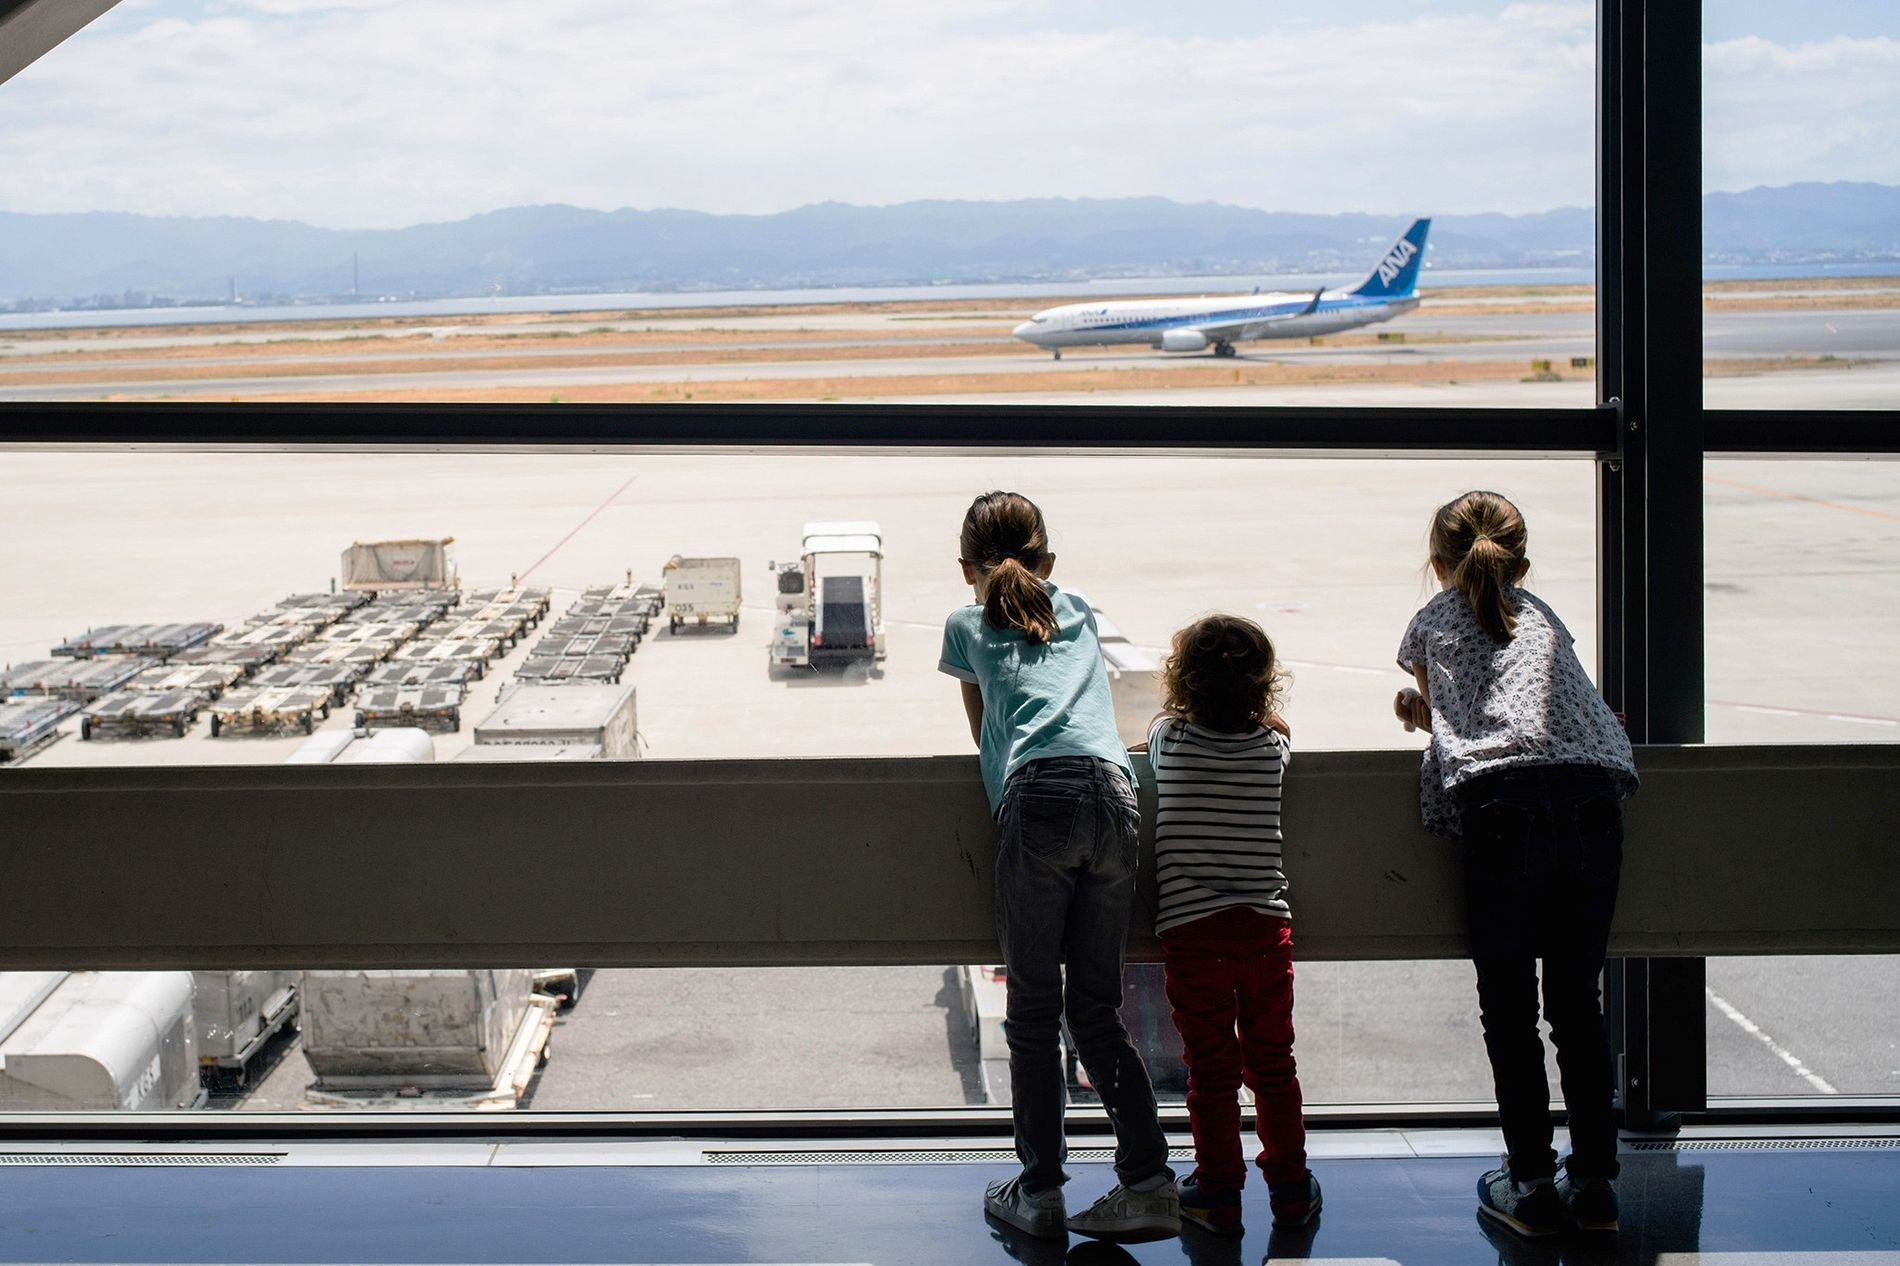 Little travellers prepare for takeoff.